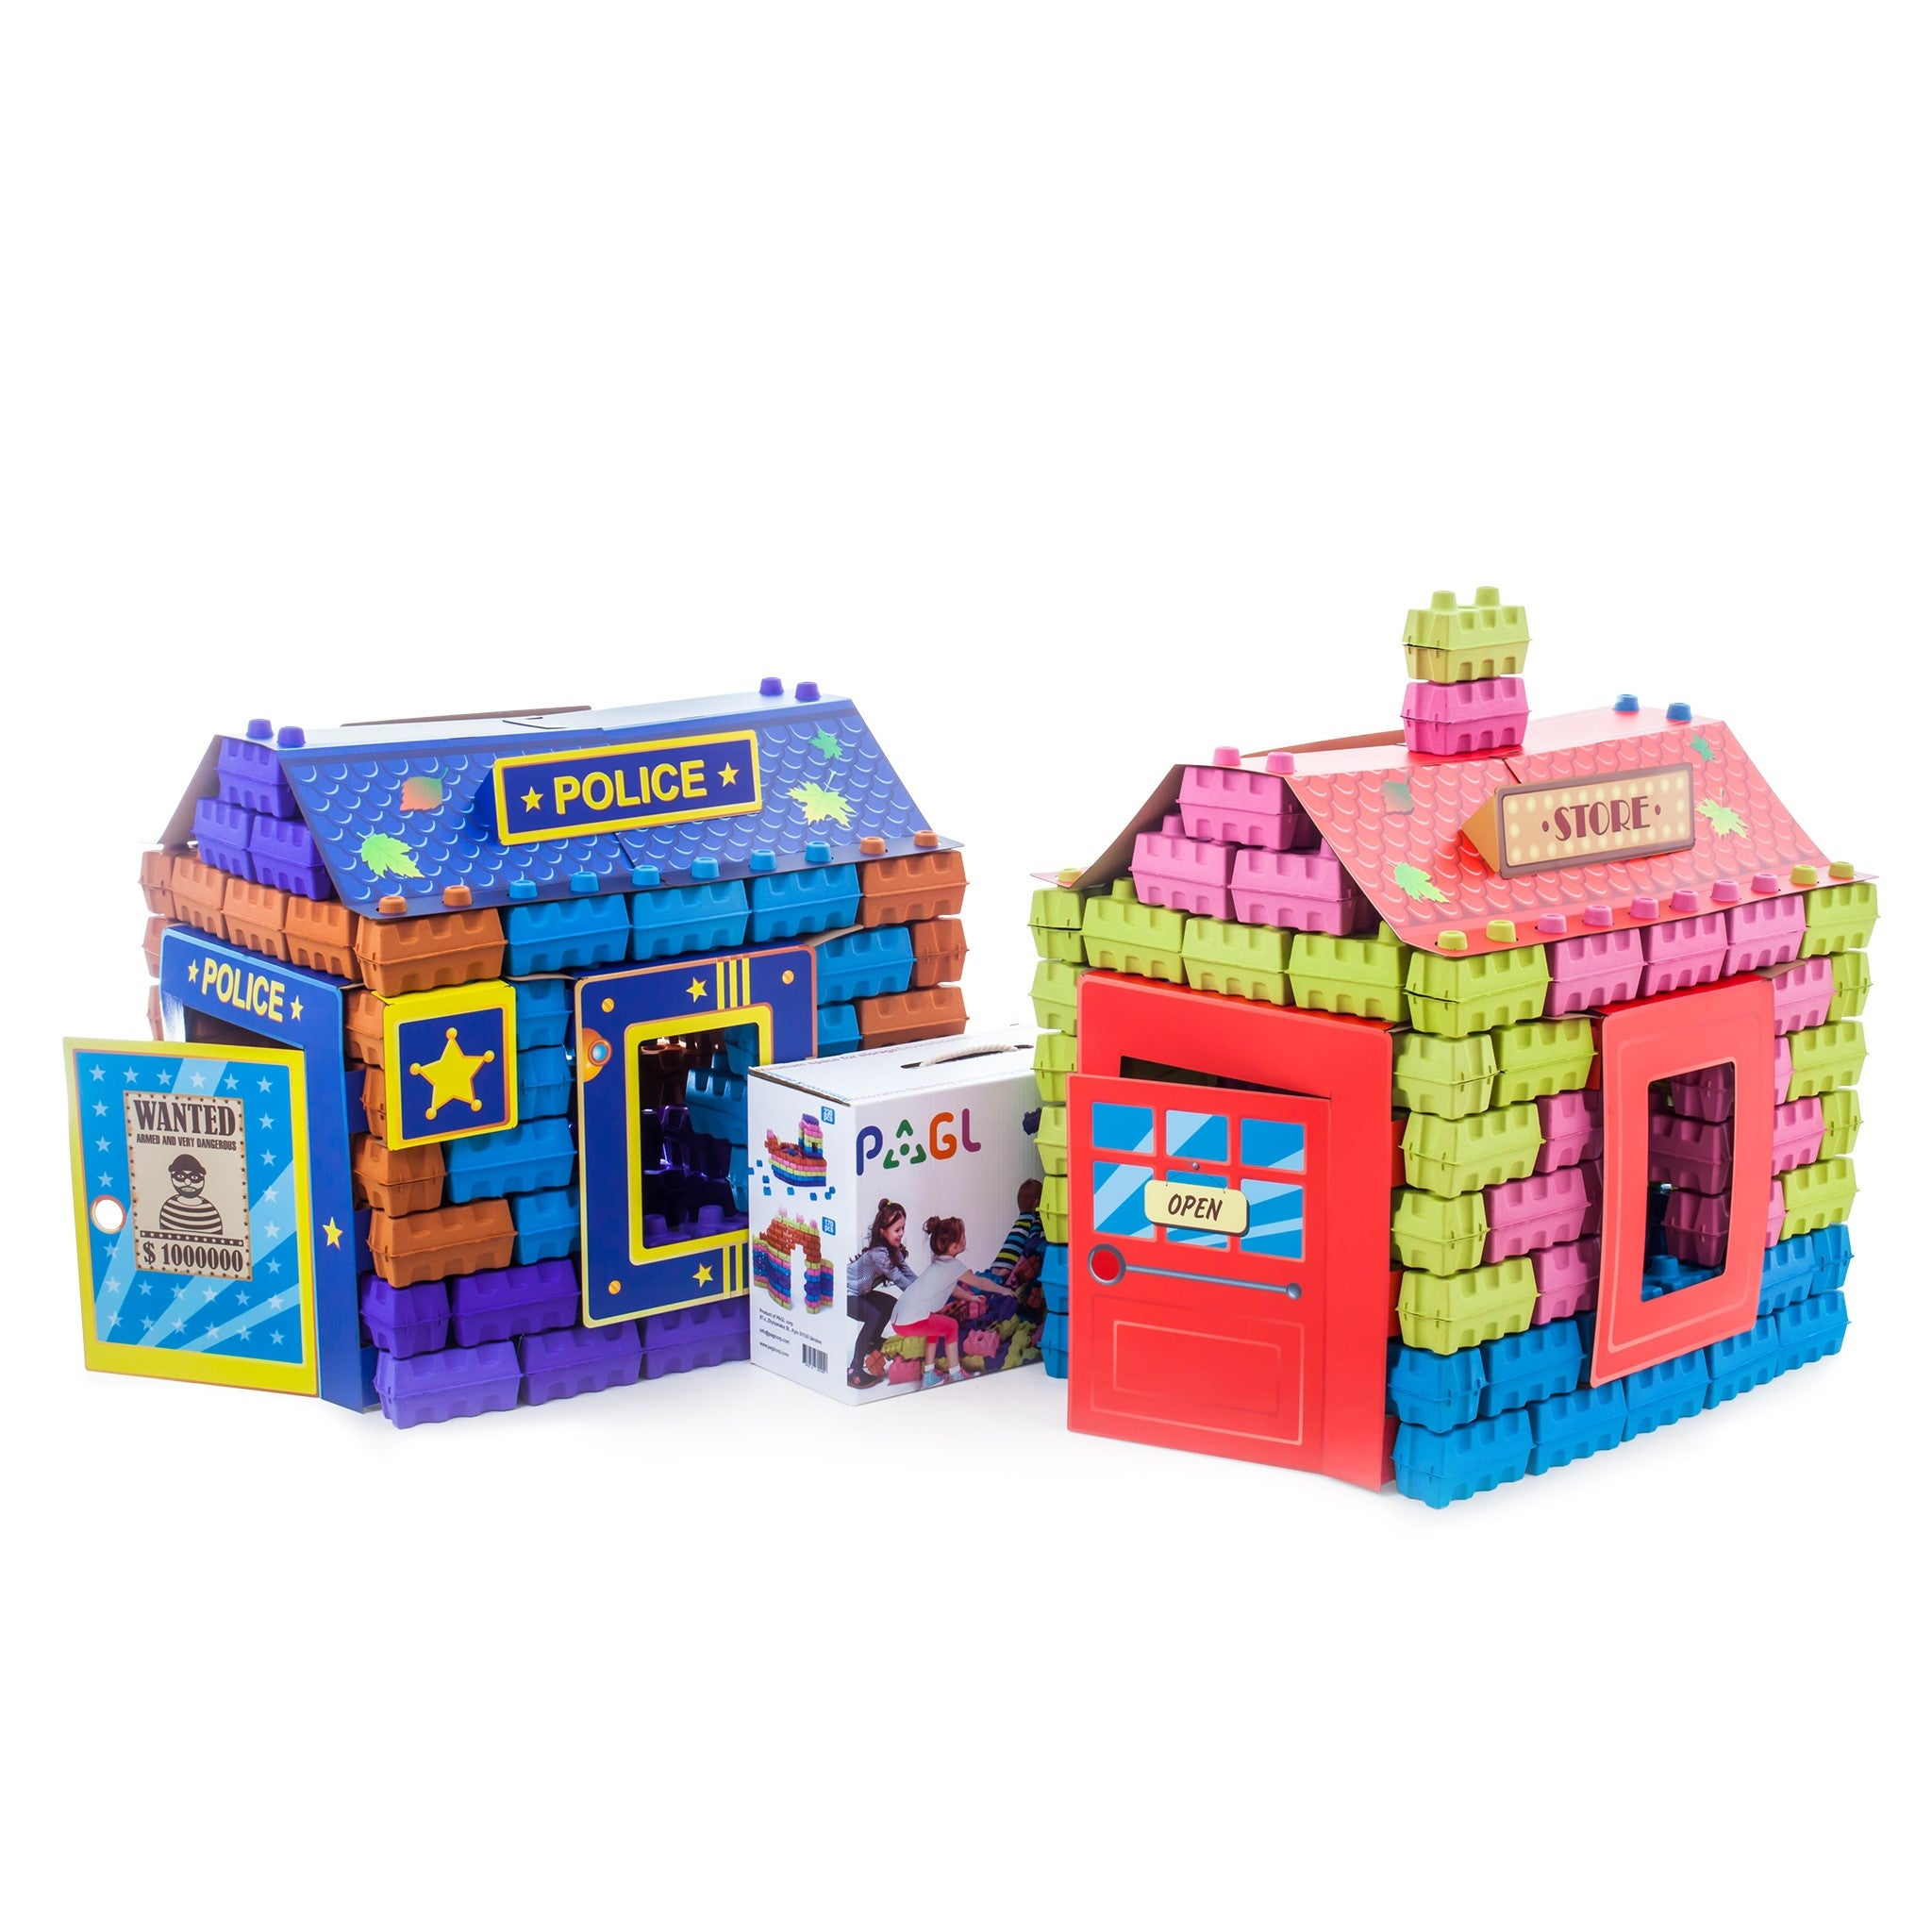 PAGL - is a construction set of large multicolored building blocks made of paper-pulp.